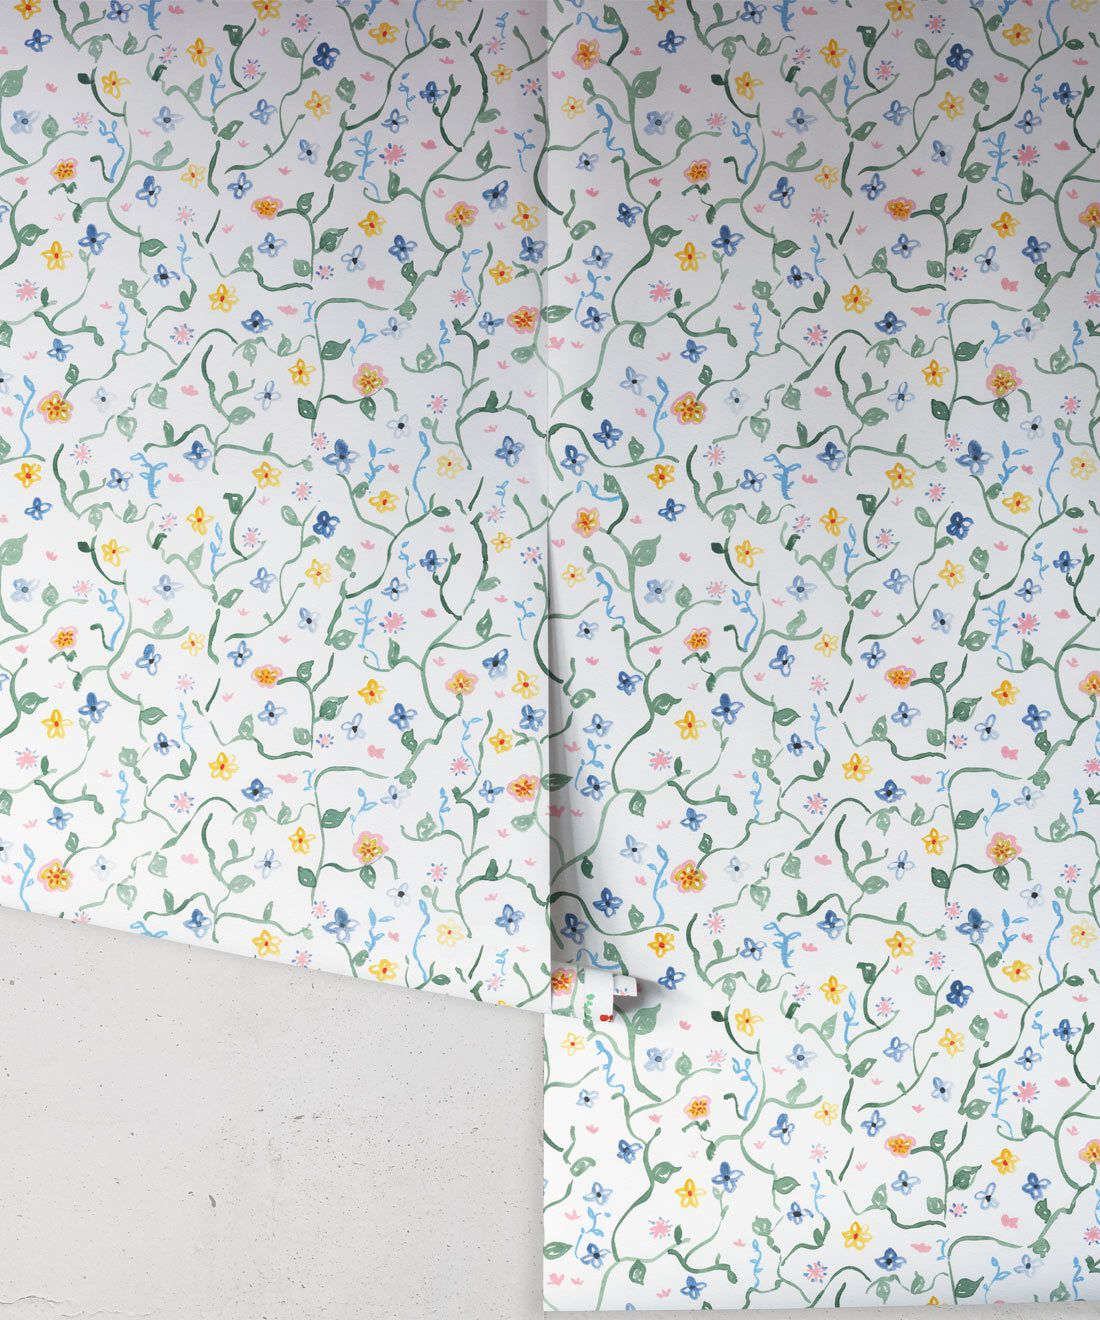 Wild Garden • Dainty Floral Wallpaper • Milton & King Europe • Georgia MacMillan • Childrens Wallpaper • Nursery Wallpaper